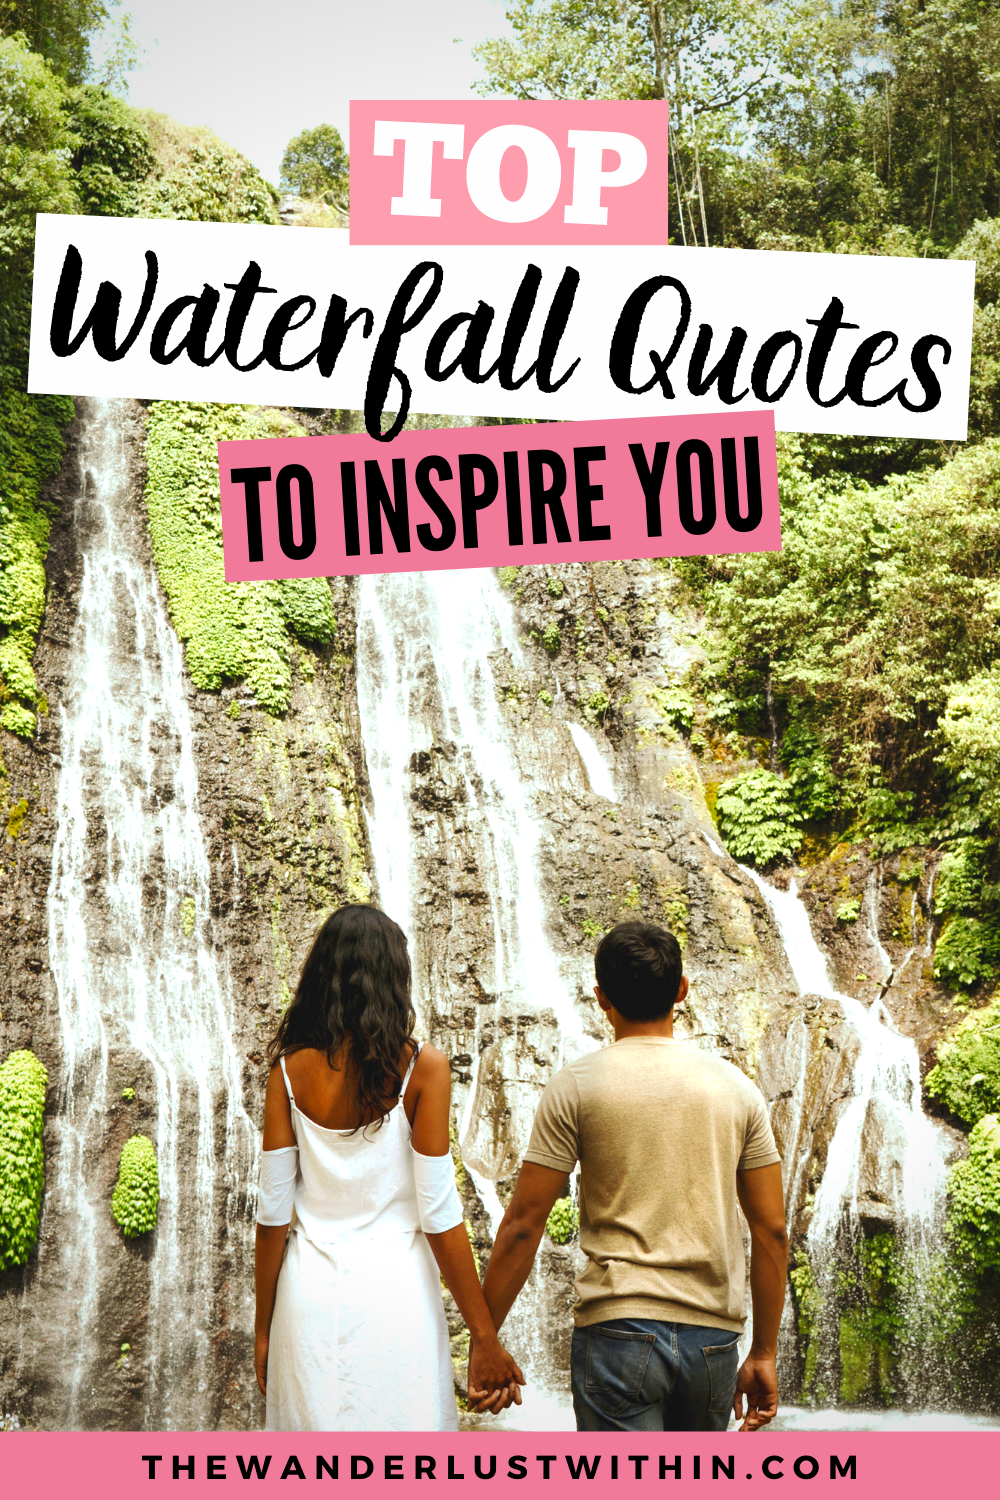 80 Best Waterfall Quotes For 2020 The Wanderlust Within In 2020 Waterfall Quotes Funny Travel Quotes Travel Quotes Adventure